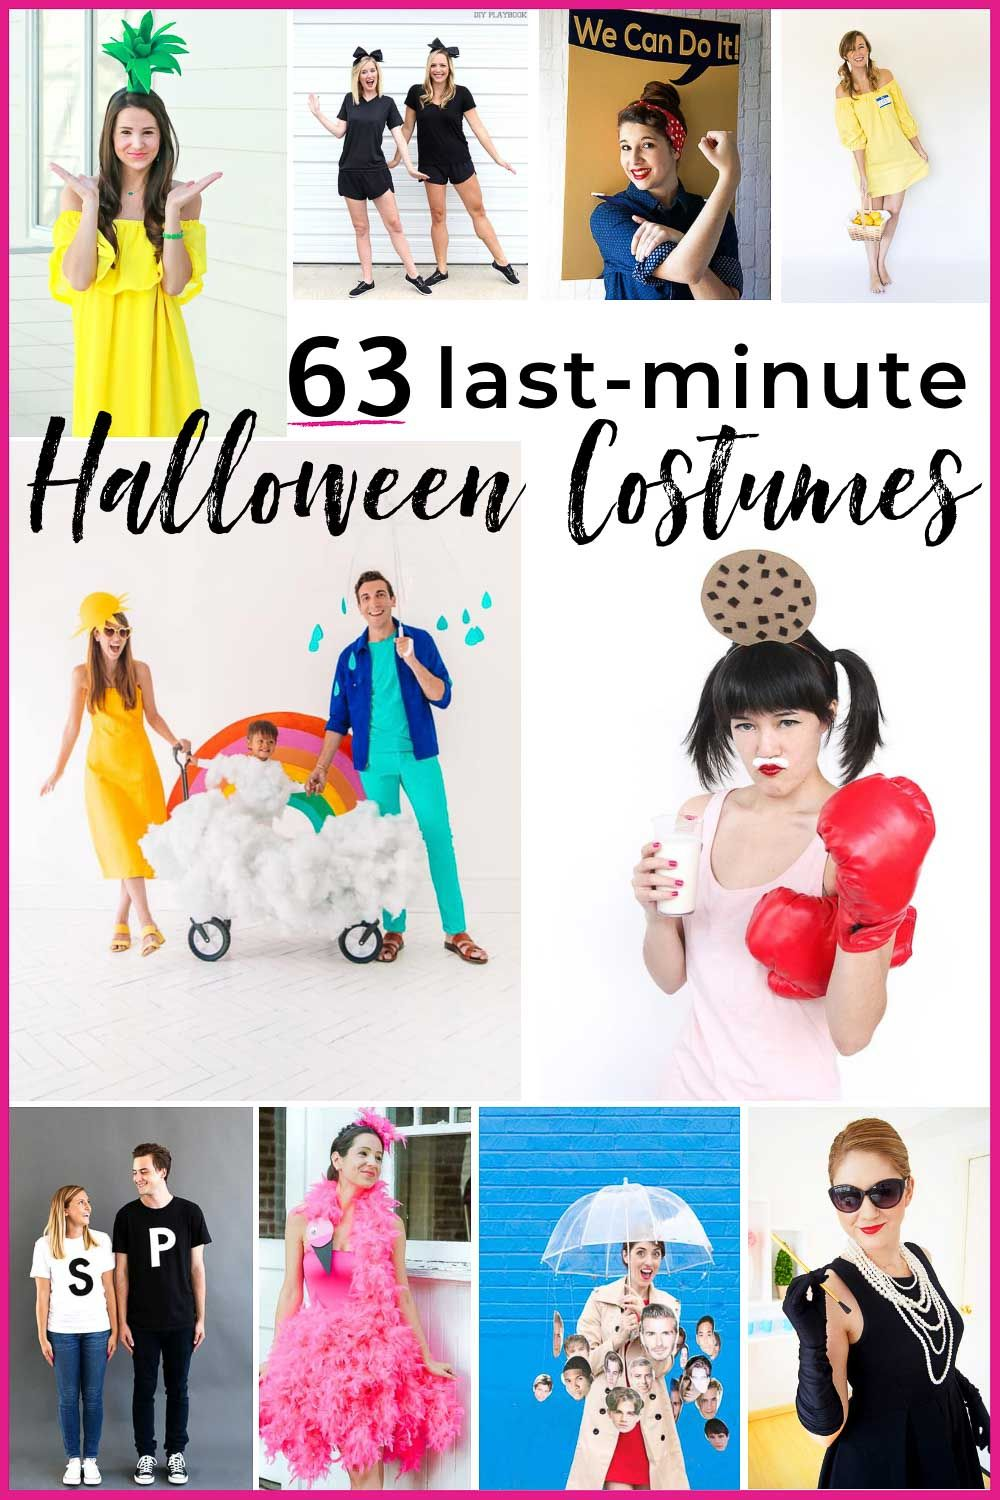 last minute costume ideas that donut look like an afterthought